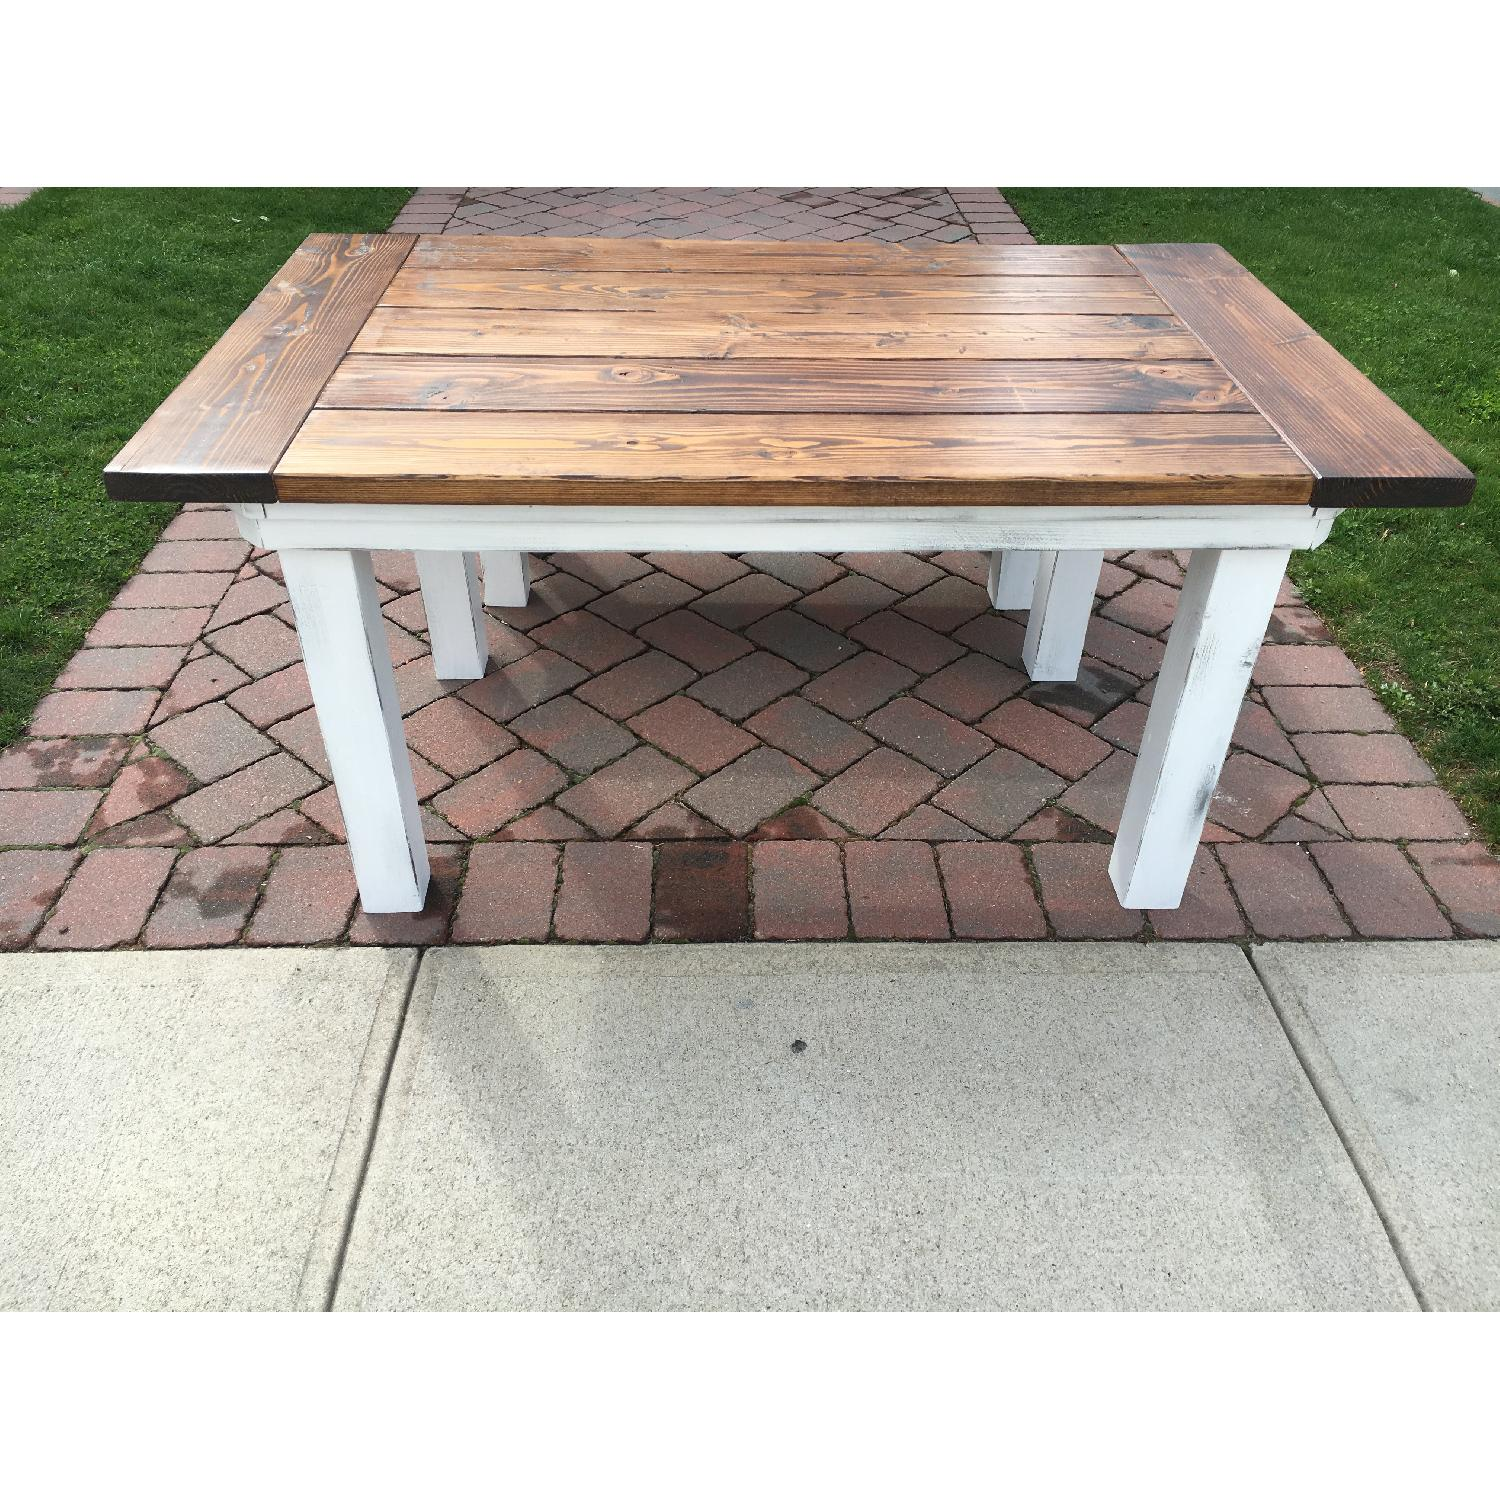 Rustic Farm Table w/ 1 Bench - image-3